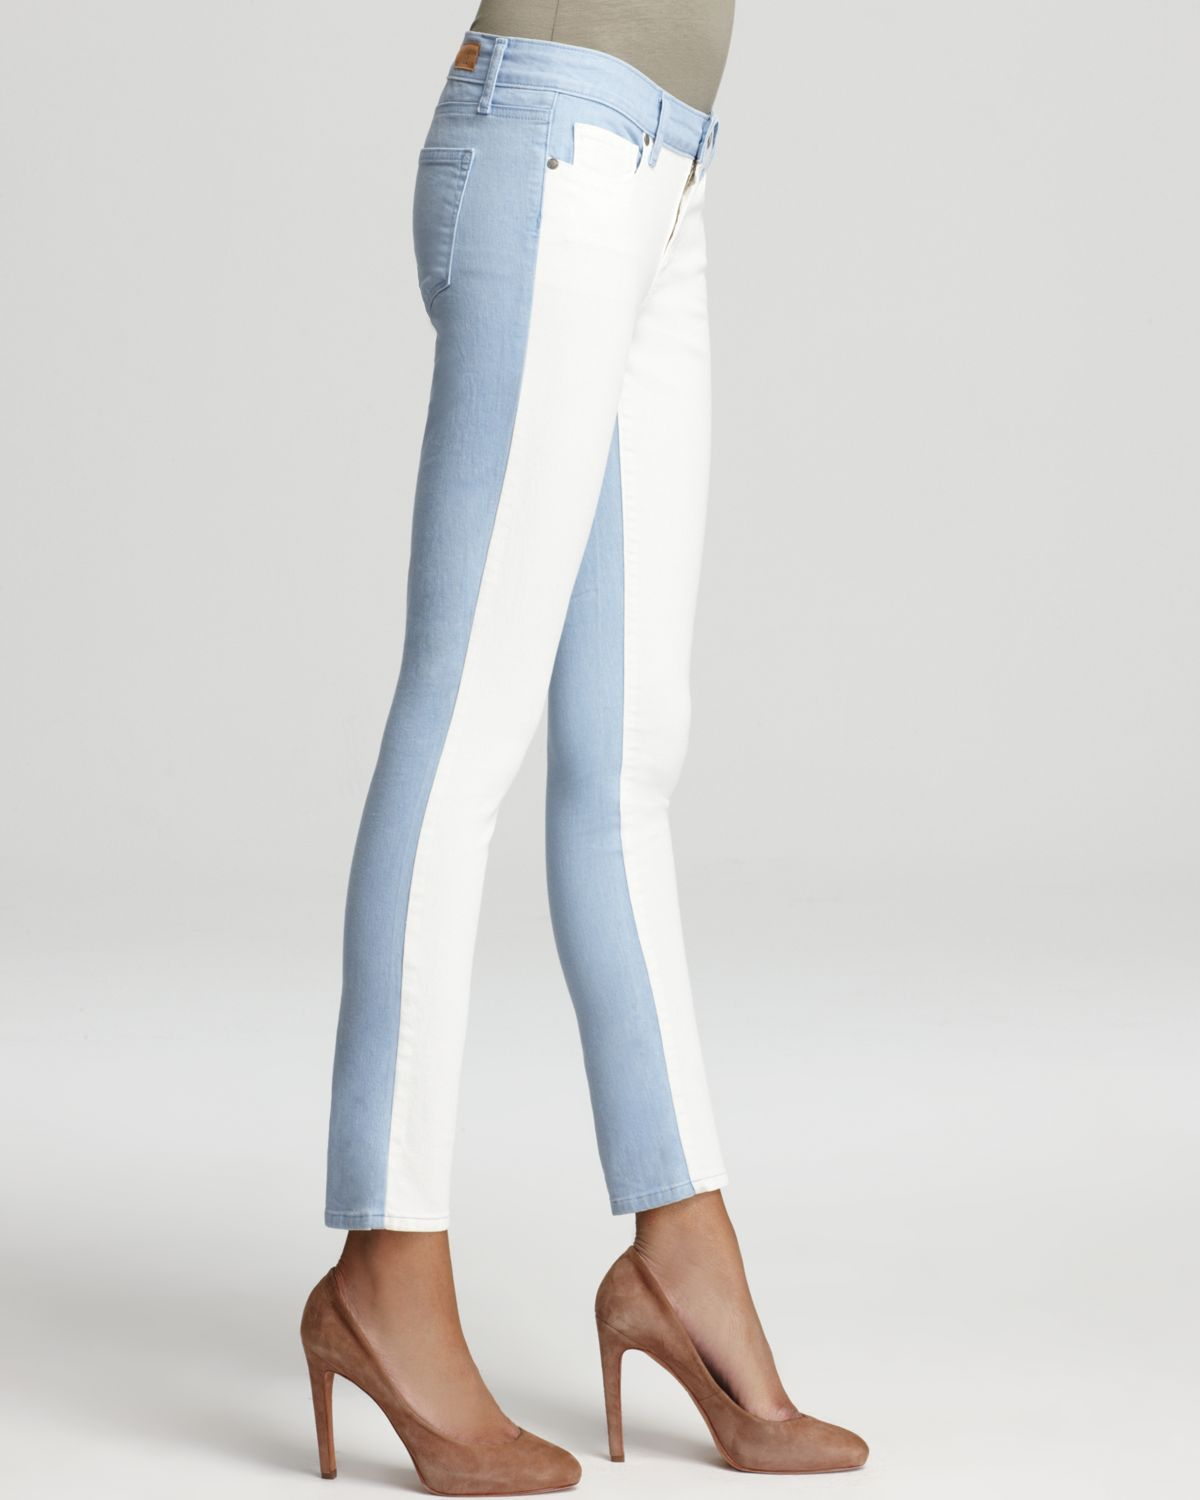 Hot Sale Online Looking For For Sale Paige Denim Colorblock Mid-Rise Jeans Good Service Clearance Reliable SaDSx